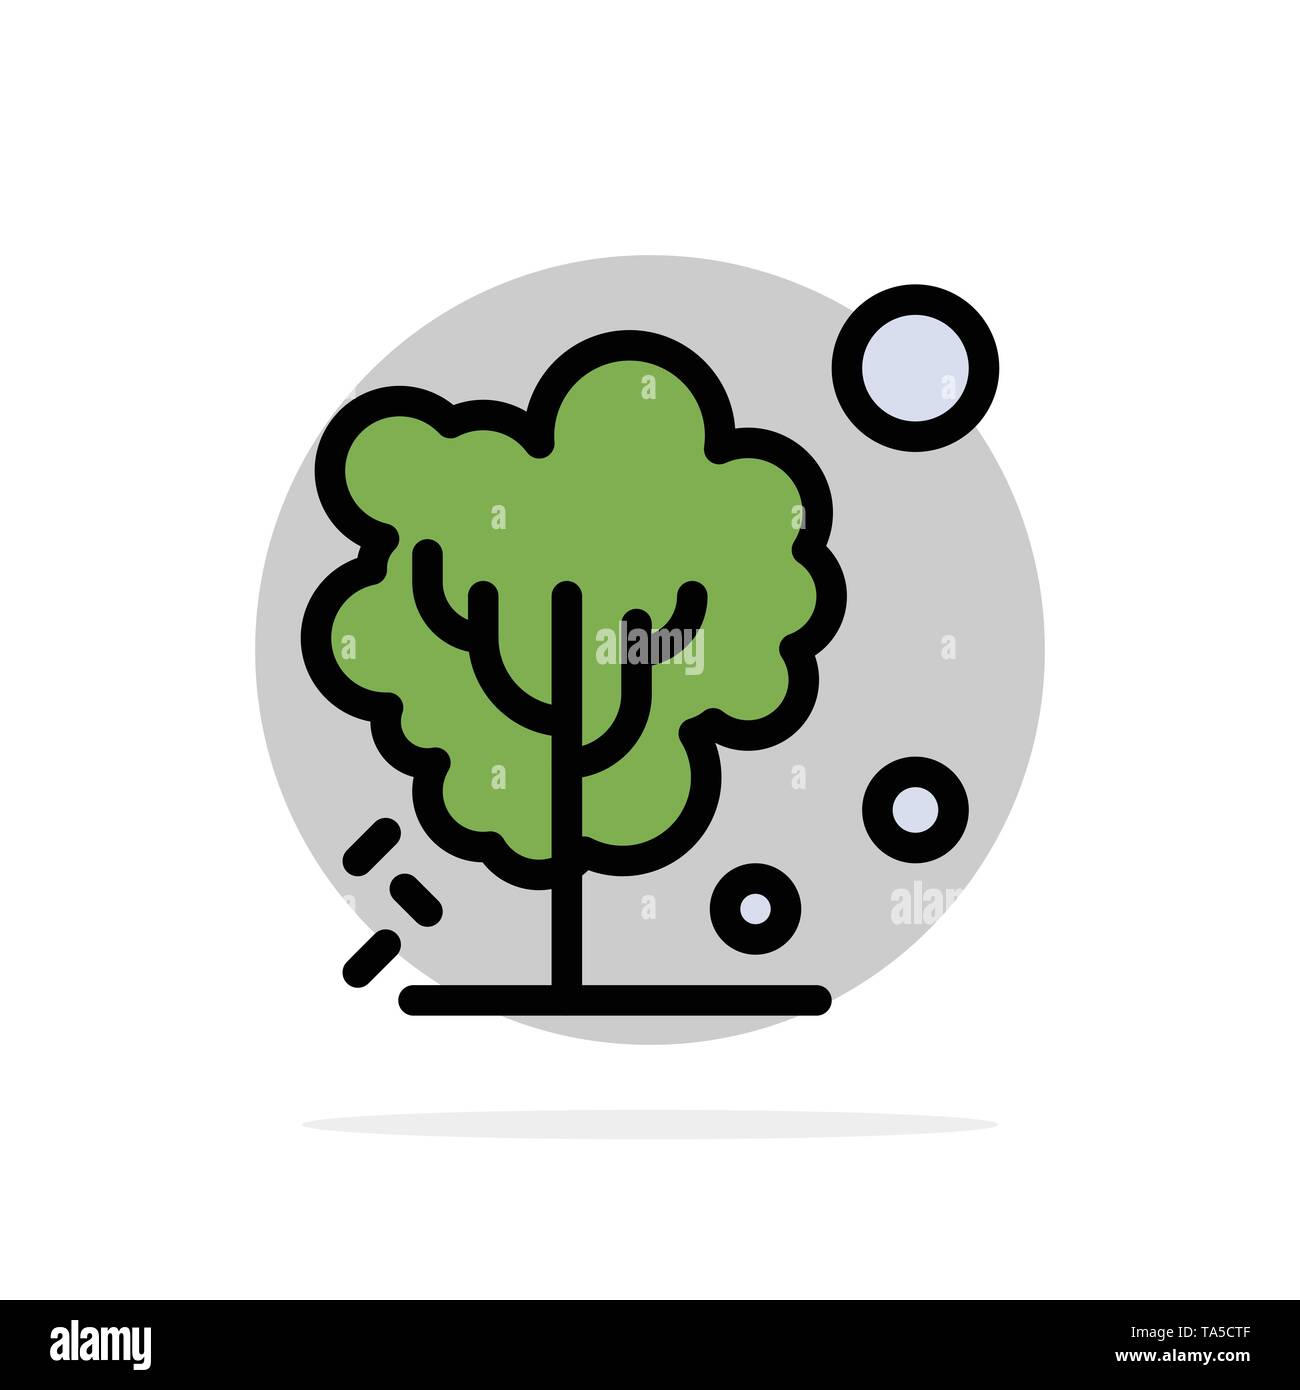 Dry, Global, Soil, Tree, Warming Abstract Circle Background Flat color Icon - Stock Image